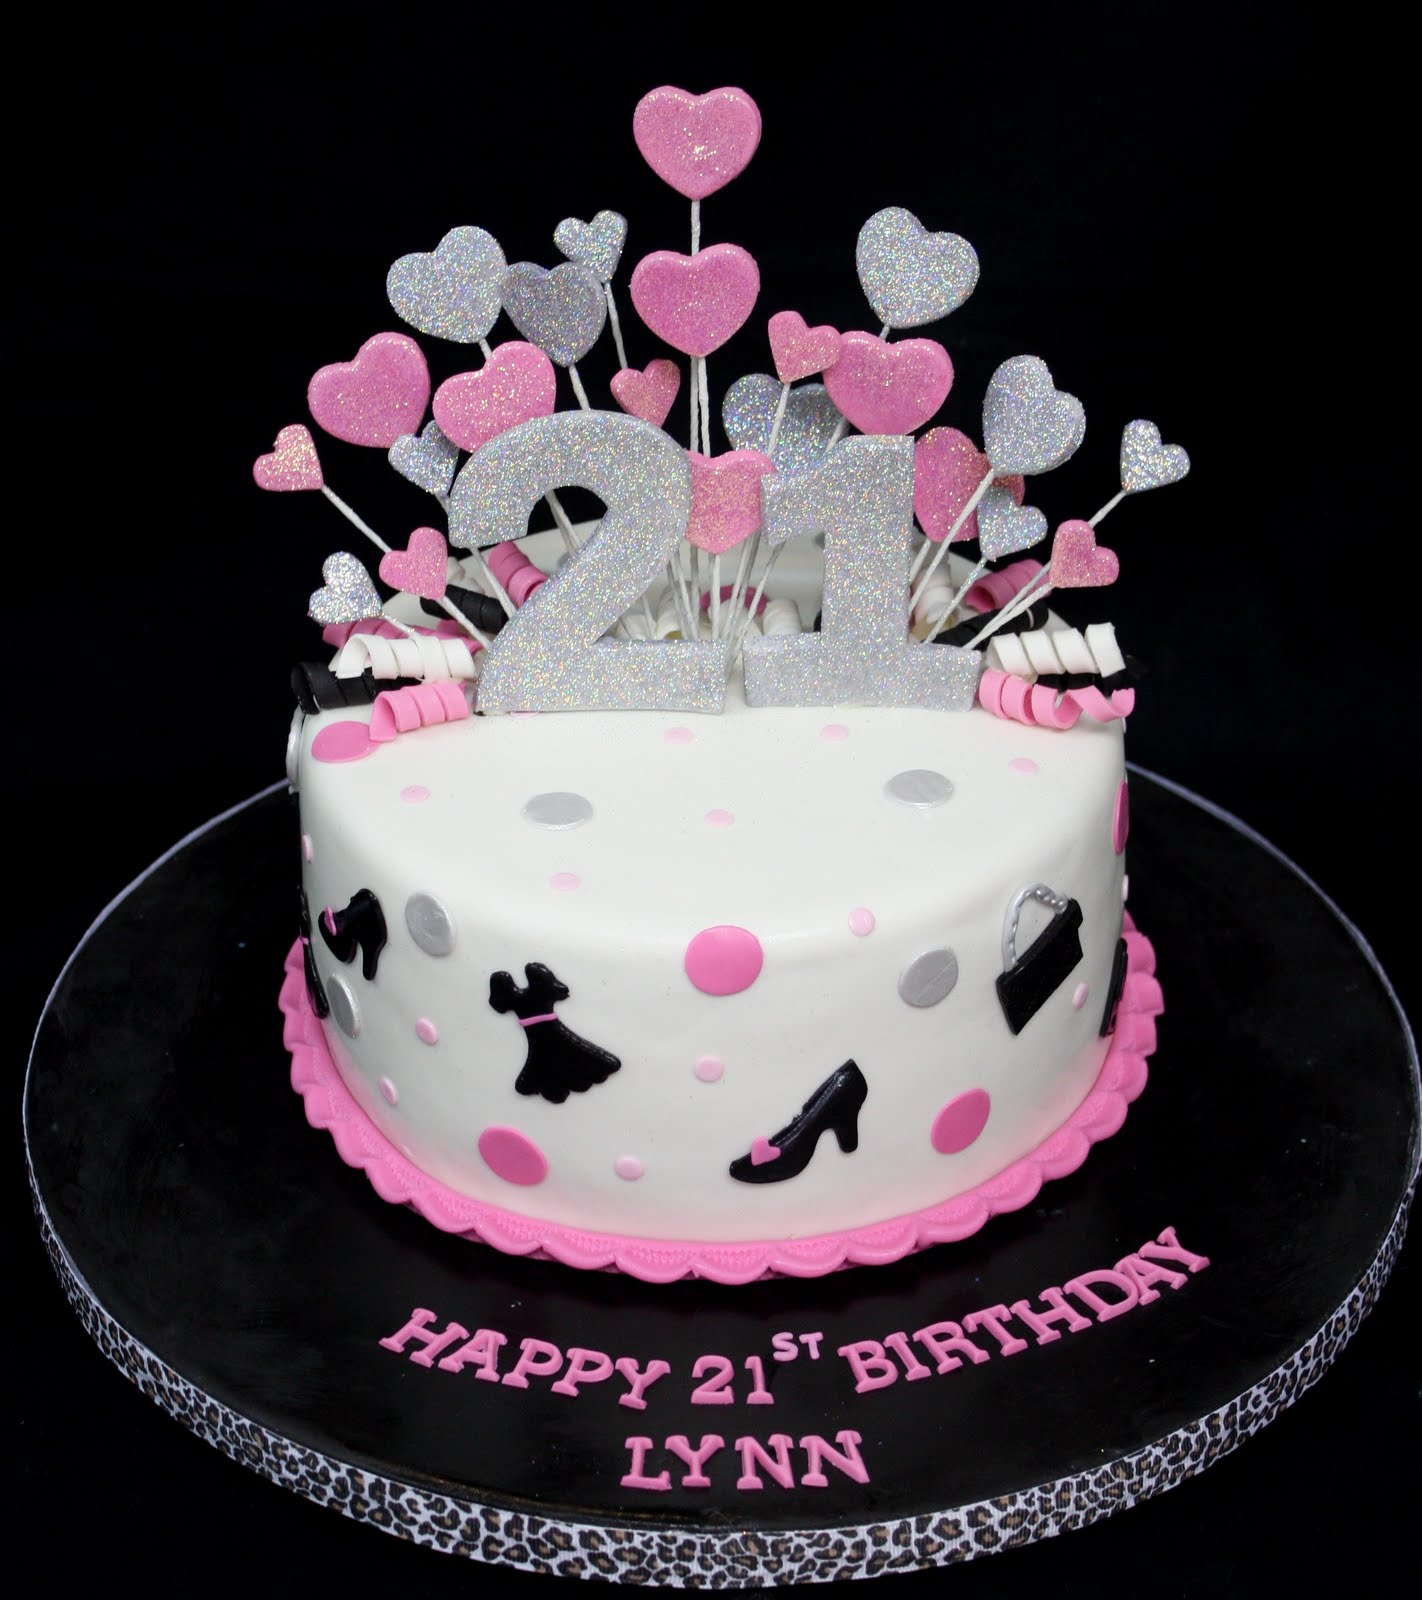 Terrific 21St Birthday Cakes Decoration Ideas Little Birthday Cakes Personalised Birthday Cards Veneteletsinfo